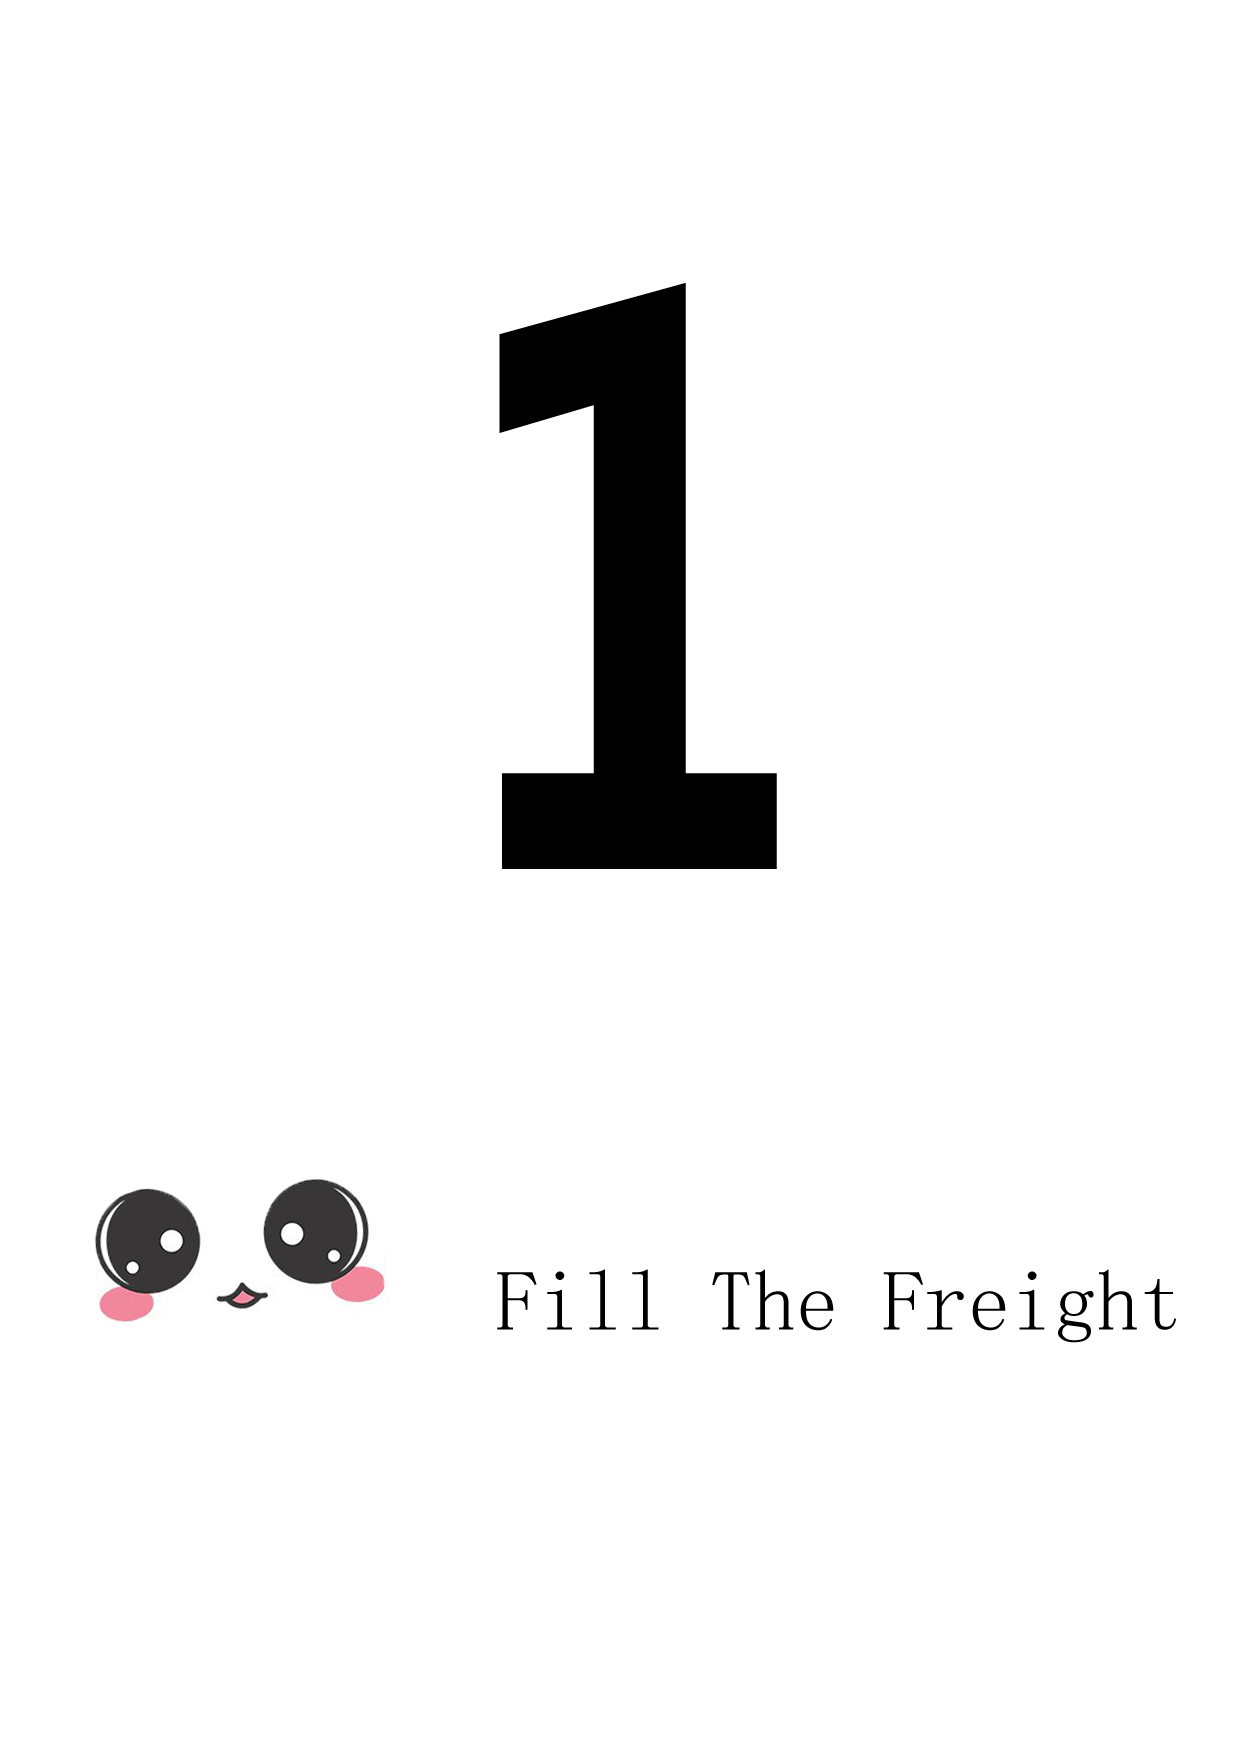 Fill The Freight